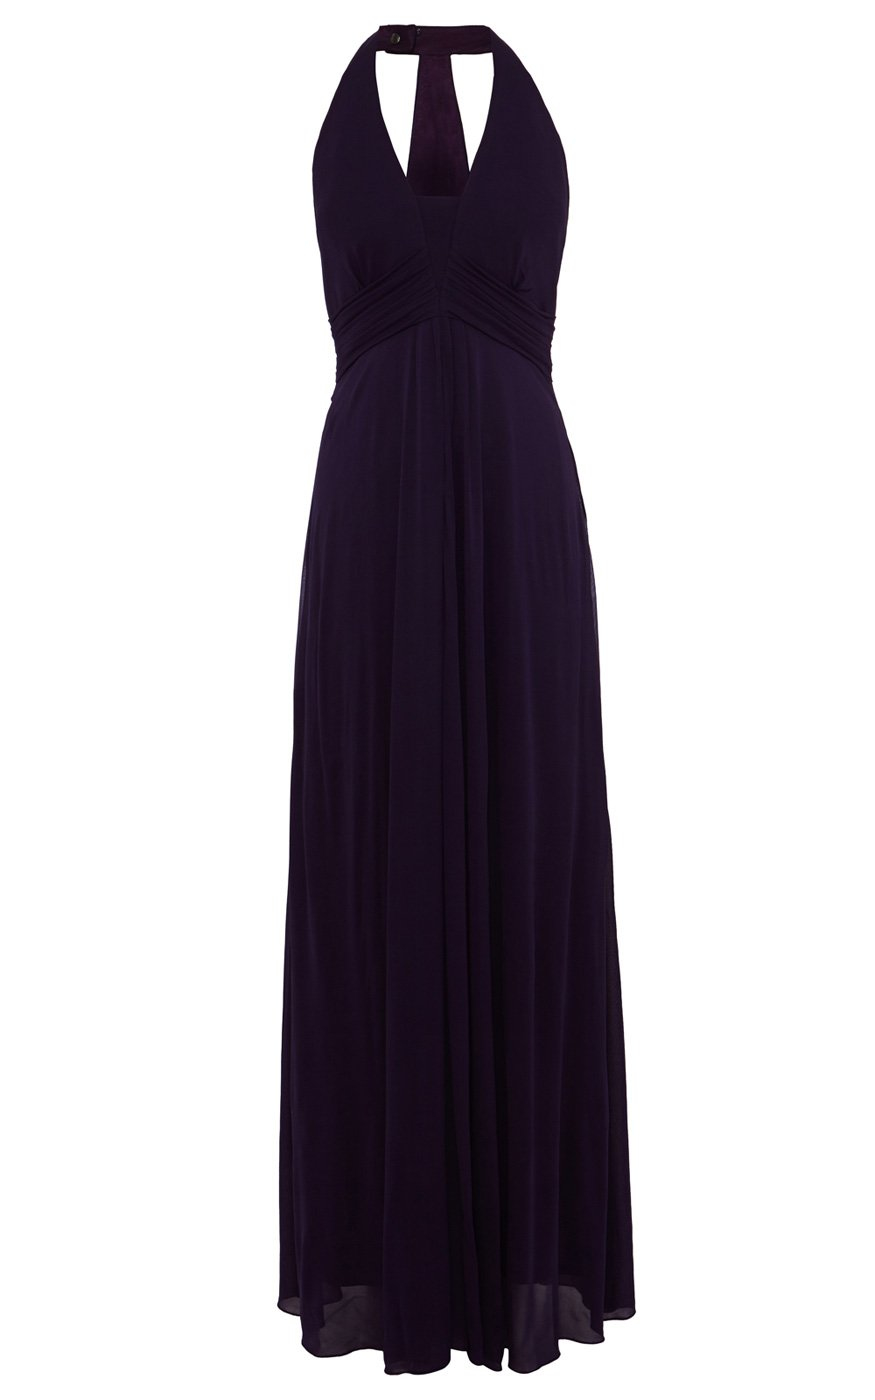 Lyst Karen Millen Halterneck Draped Jersey Maxi Dress In